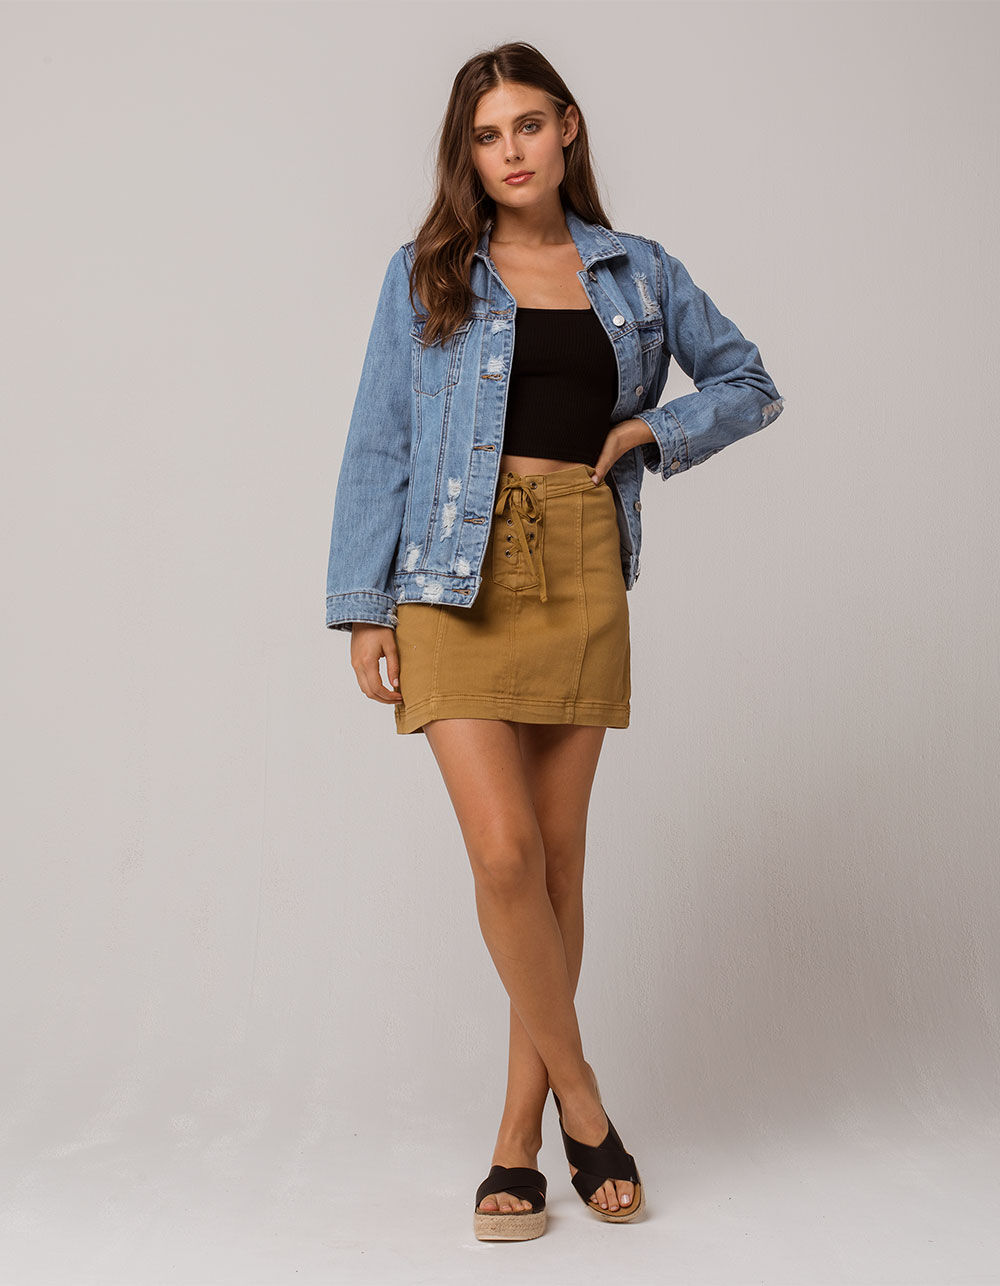 OTHERS FOLLOW Lace Up Skirt